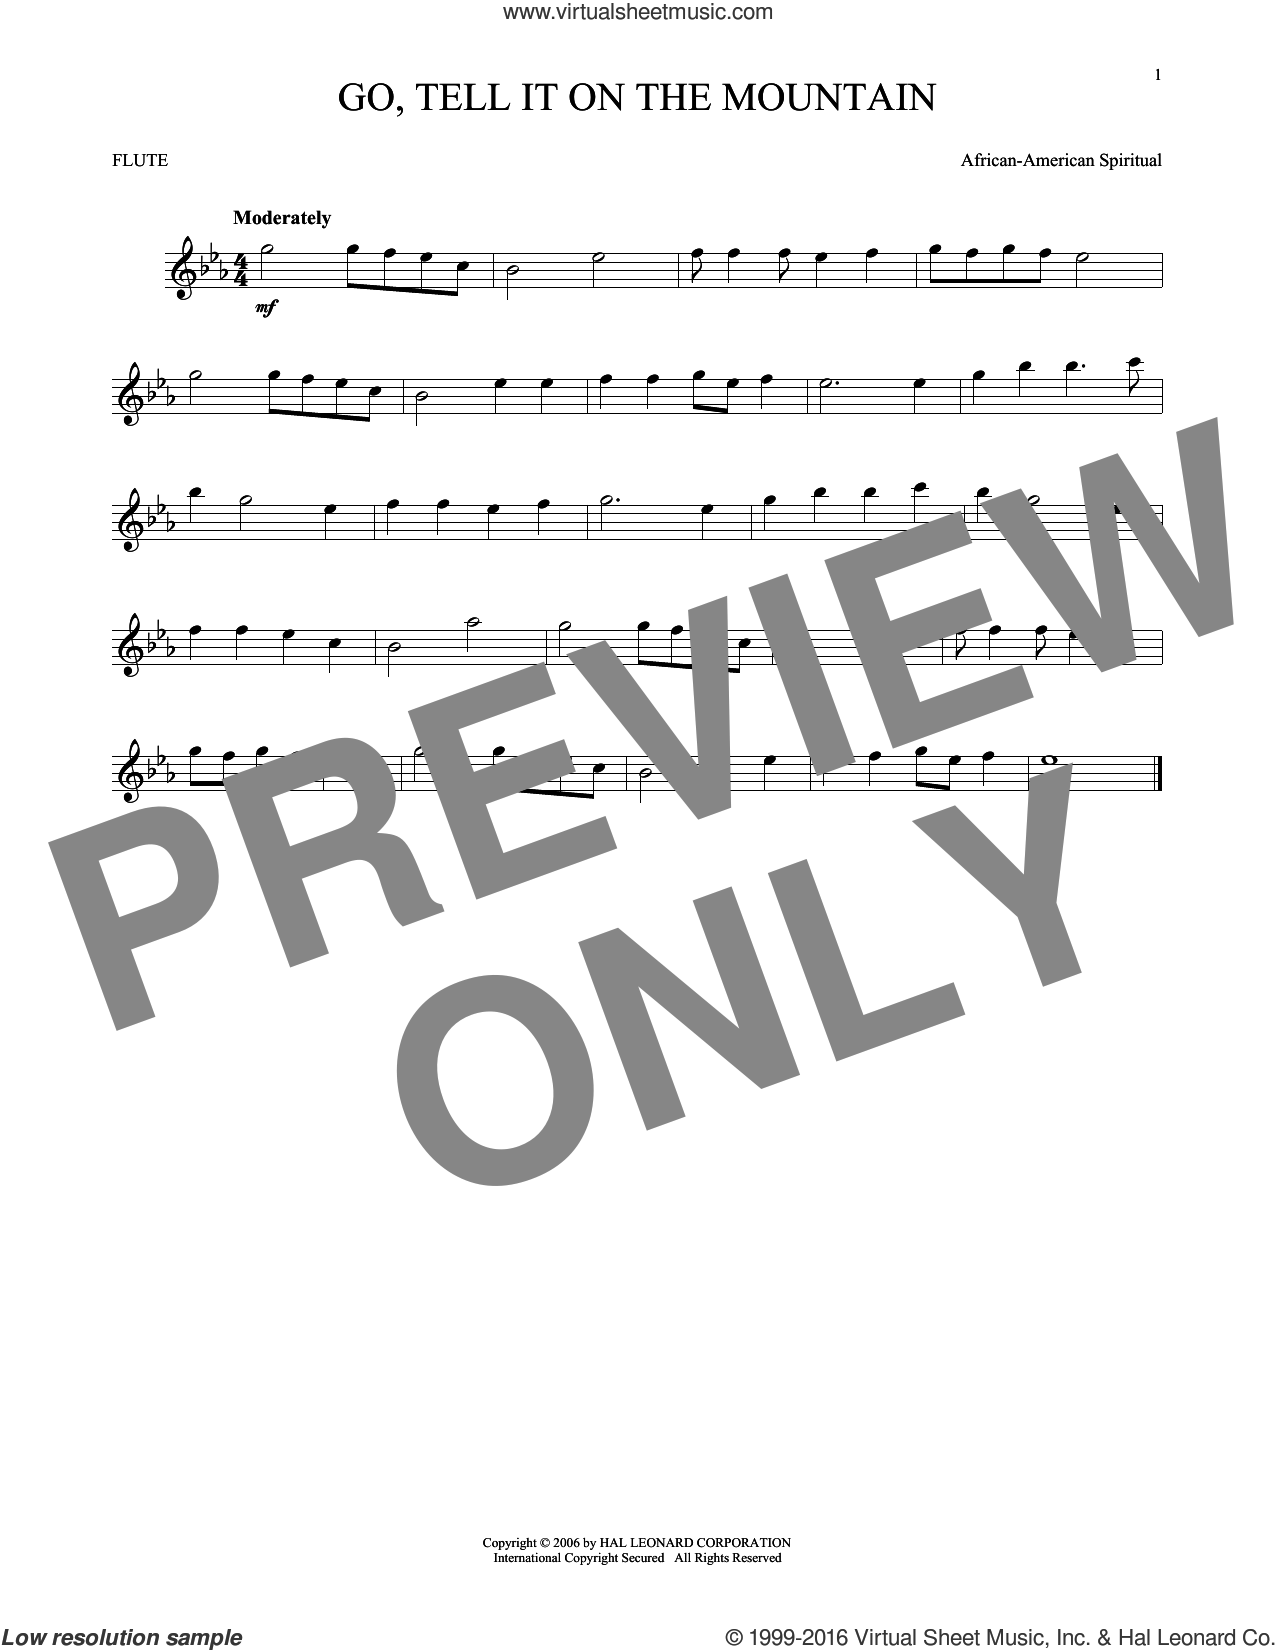 Go, Tell It On The Mountain sheet music for flute solo by John W. Work, Jr. and Miscellaneous, intermediate skill level